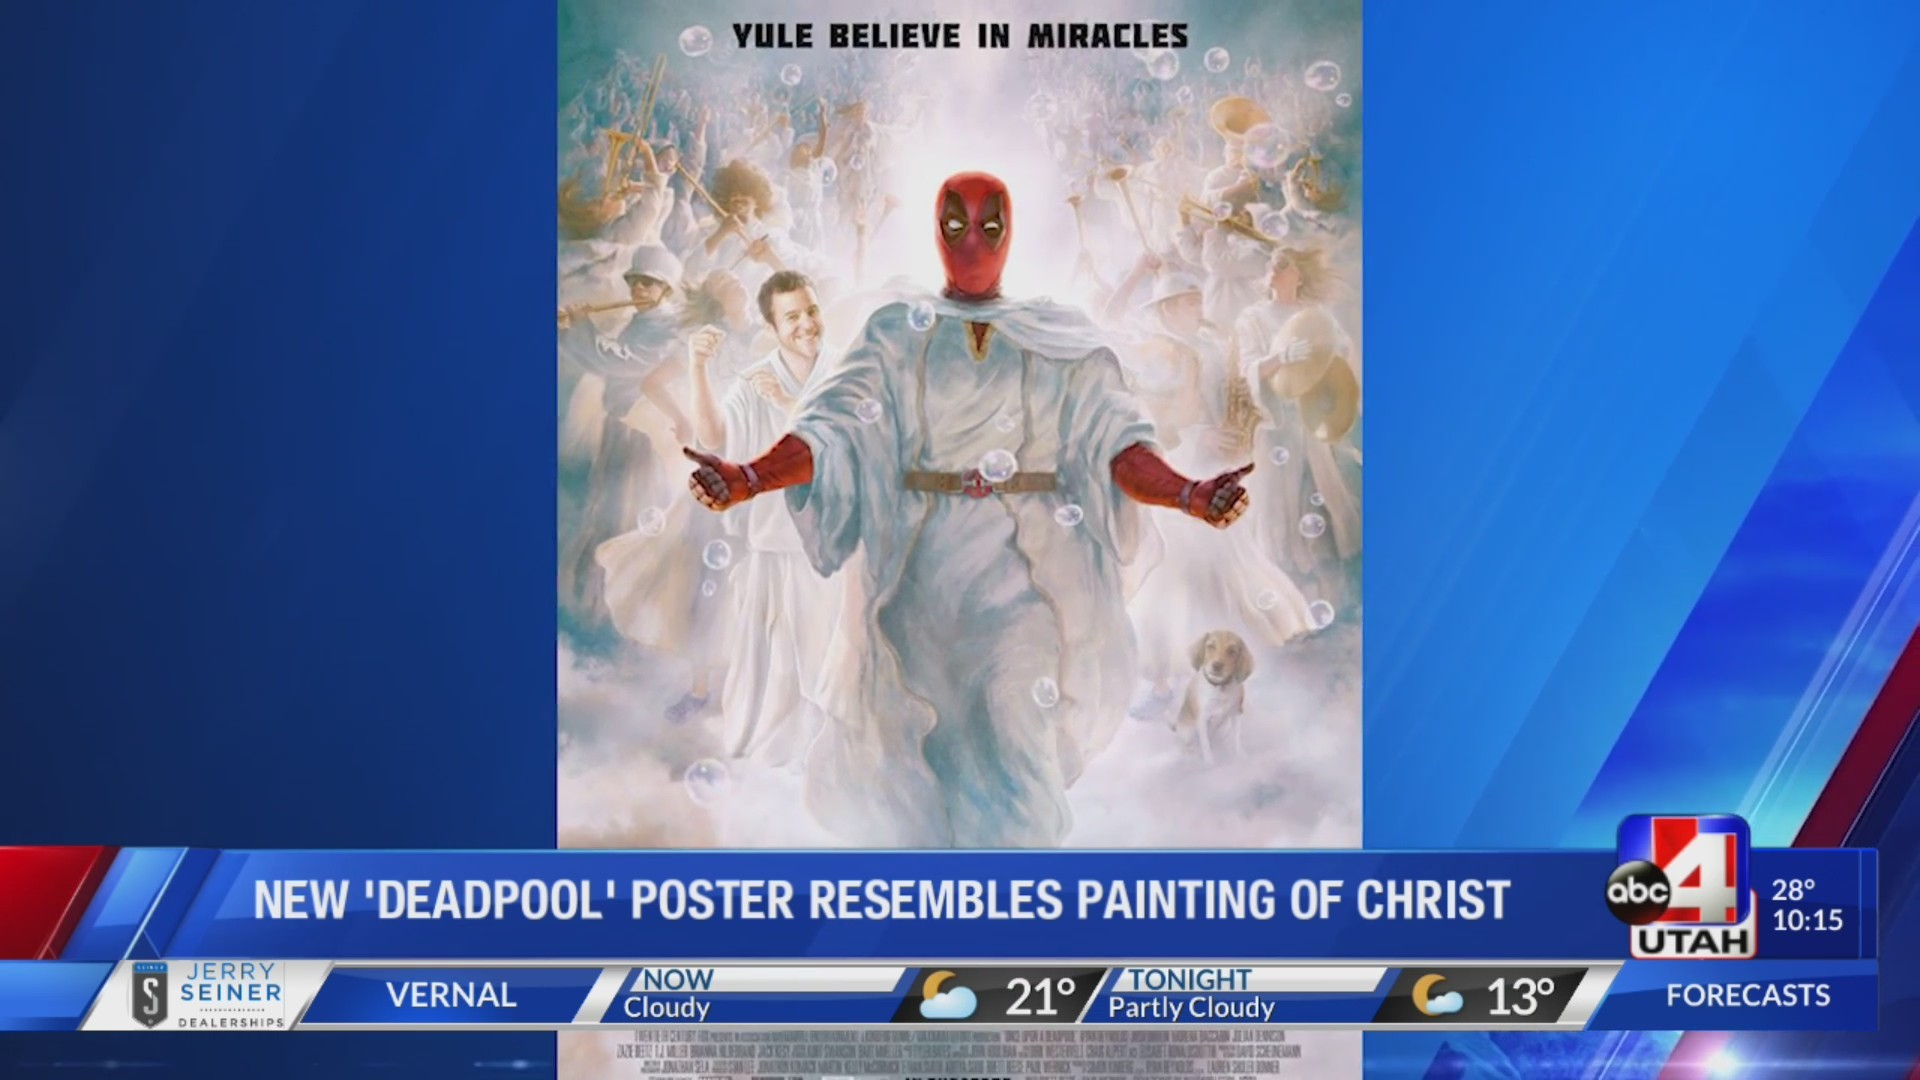 New Deadpool movie poster resembles painting of Jesus often used by